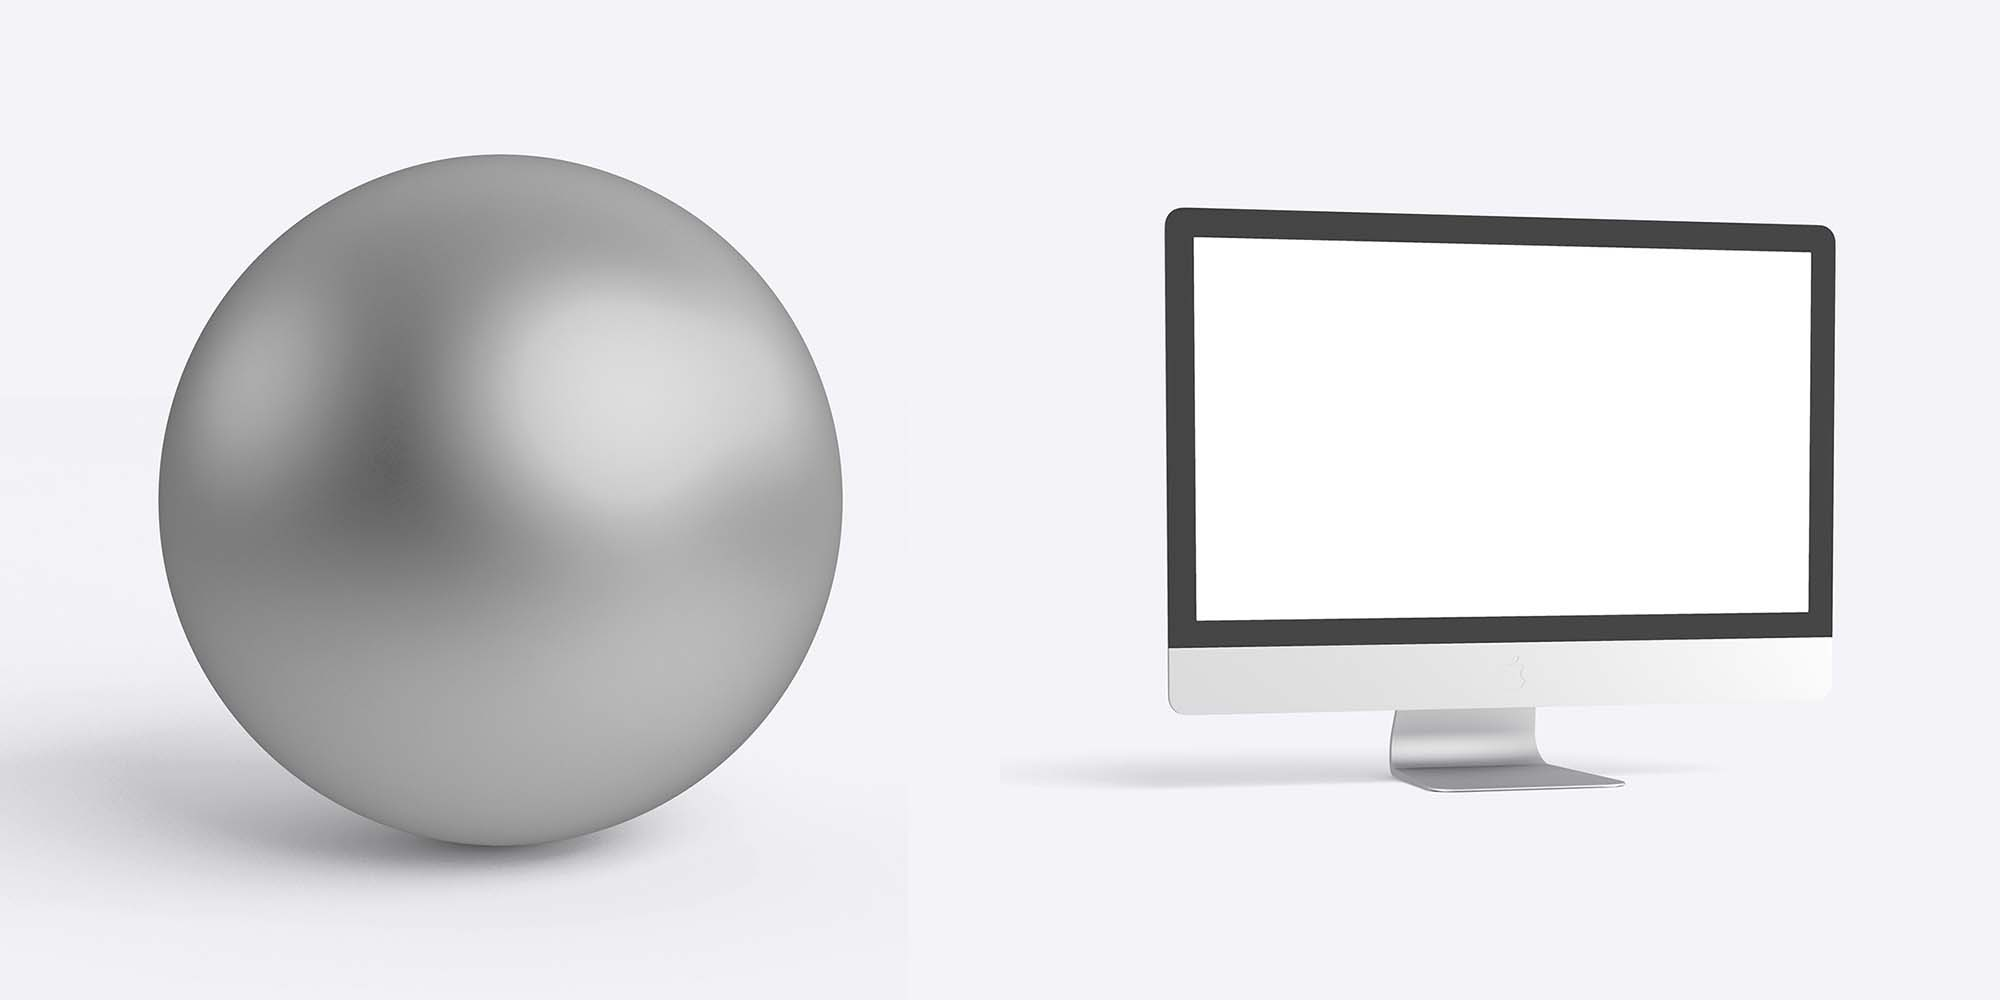 iMac with Spheres Mockup